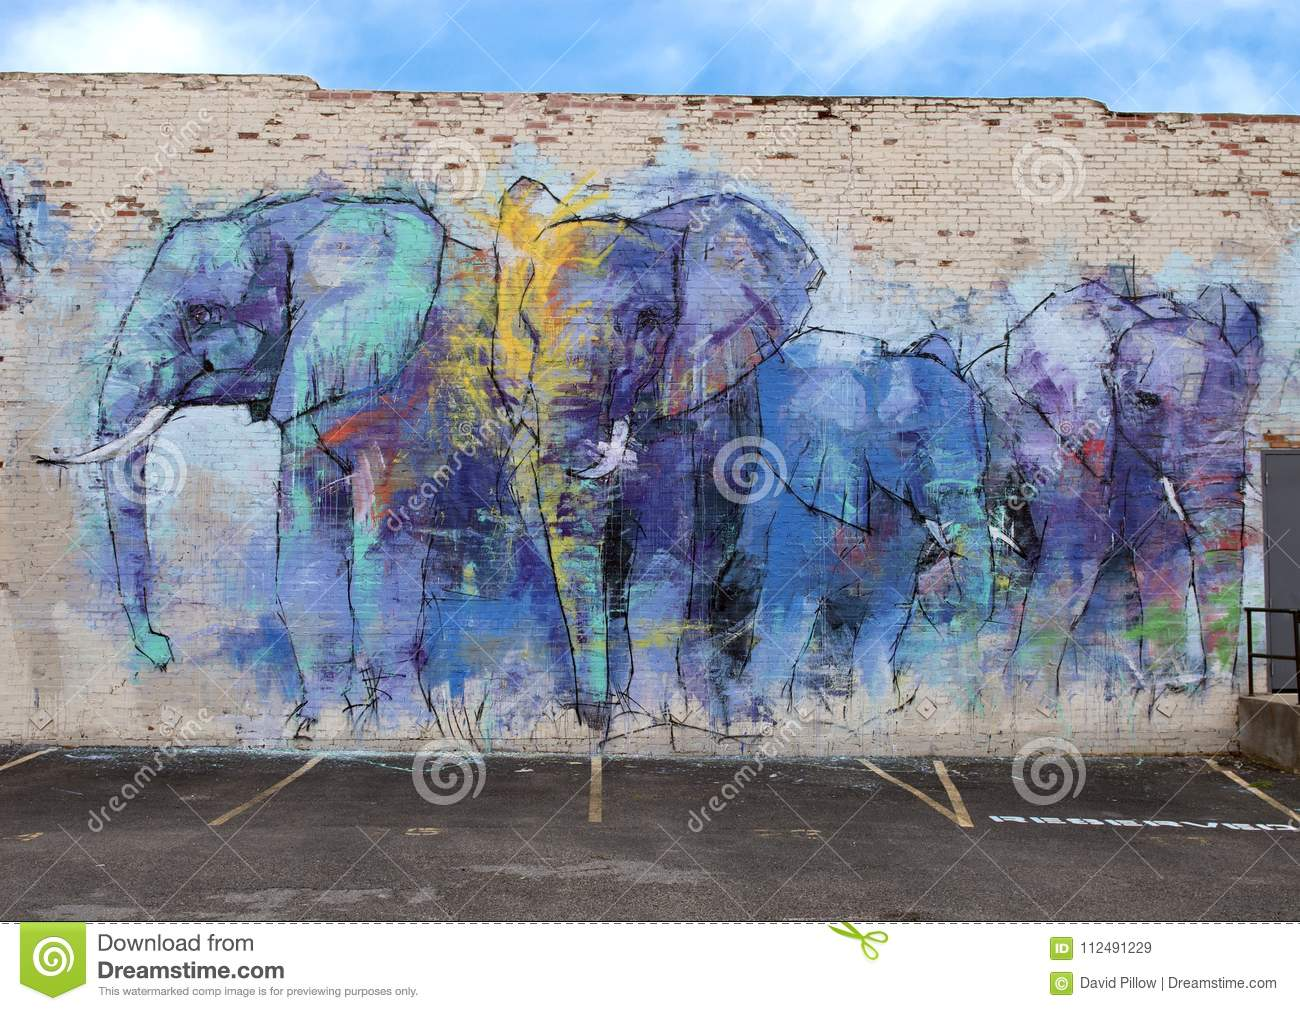 42 Mural Project Deepellumphants By Adrian Torres Deep Ellum